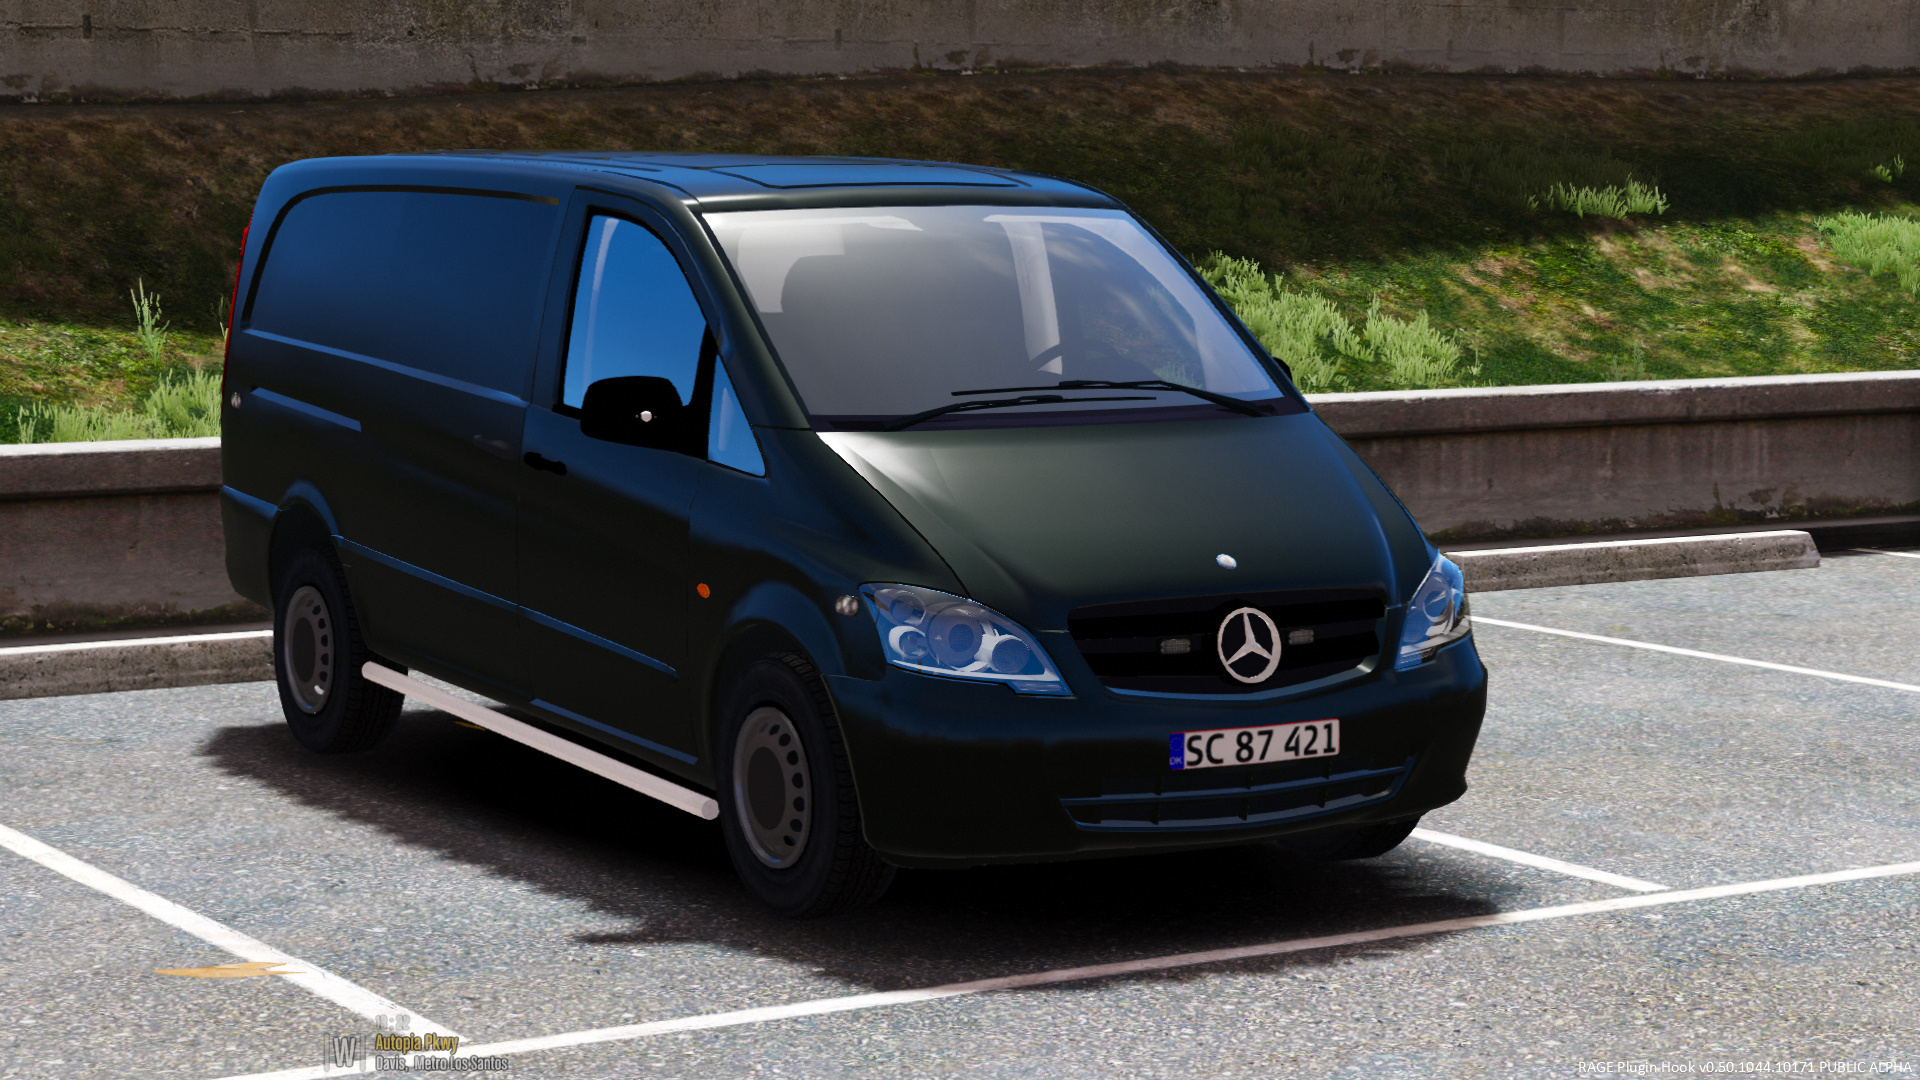 mercedes vito indsatsleder danish police gta5. Black Bedroom Furniture Sets. Home Design Ideas